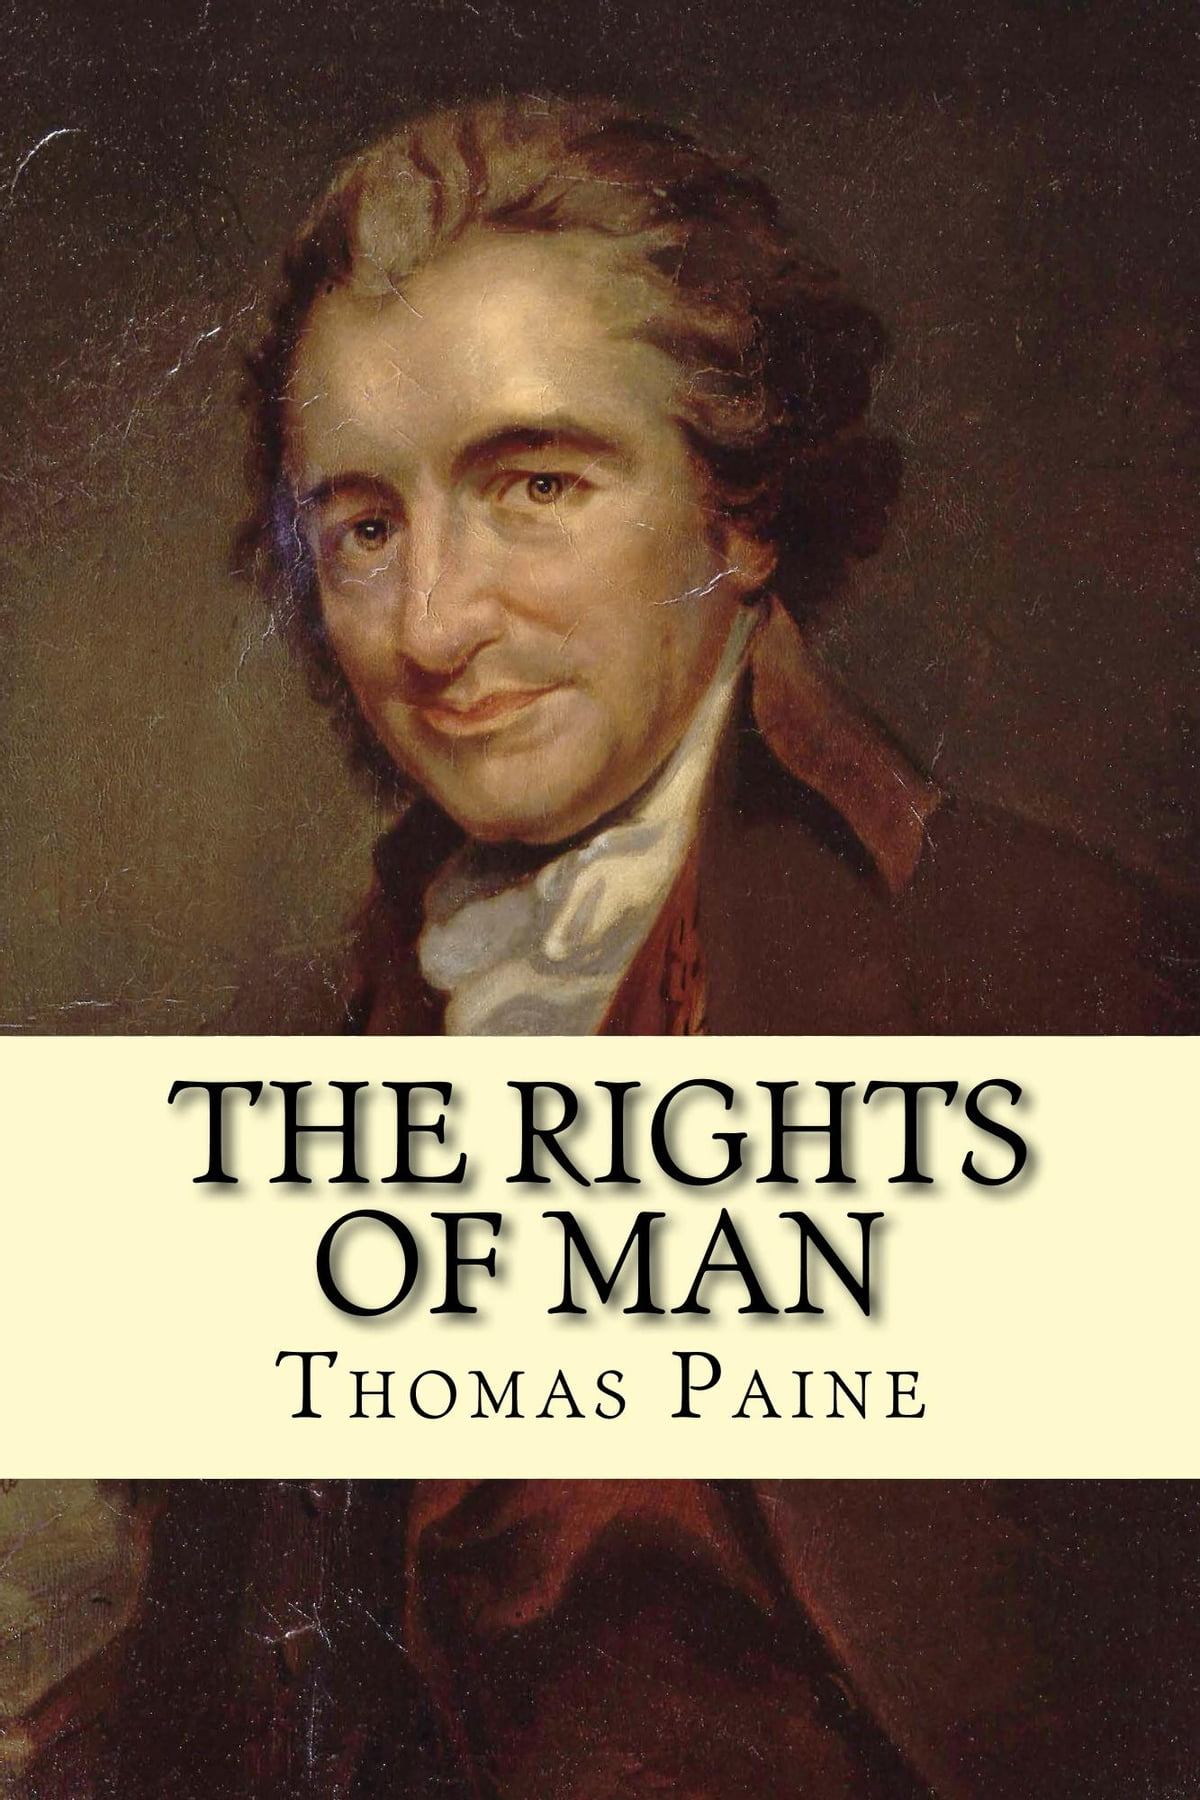 thomas paine the father of revolution essay Thomas paine was born on january 29th of 1737 in england his father was a poor quaker corseter he tried to provide his son with an education, but he failed out of that.